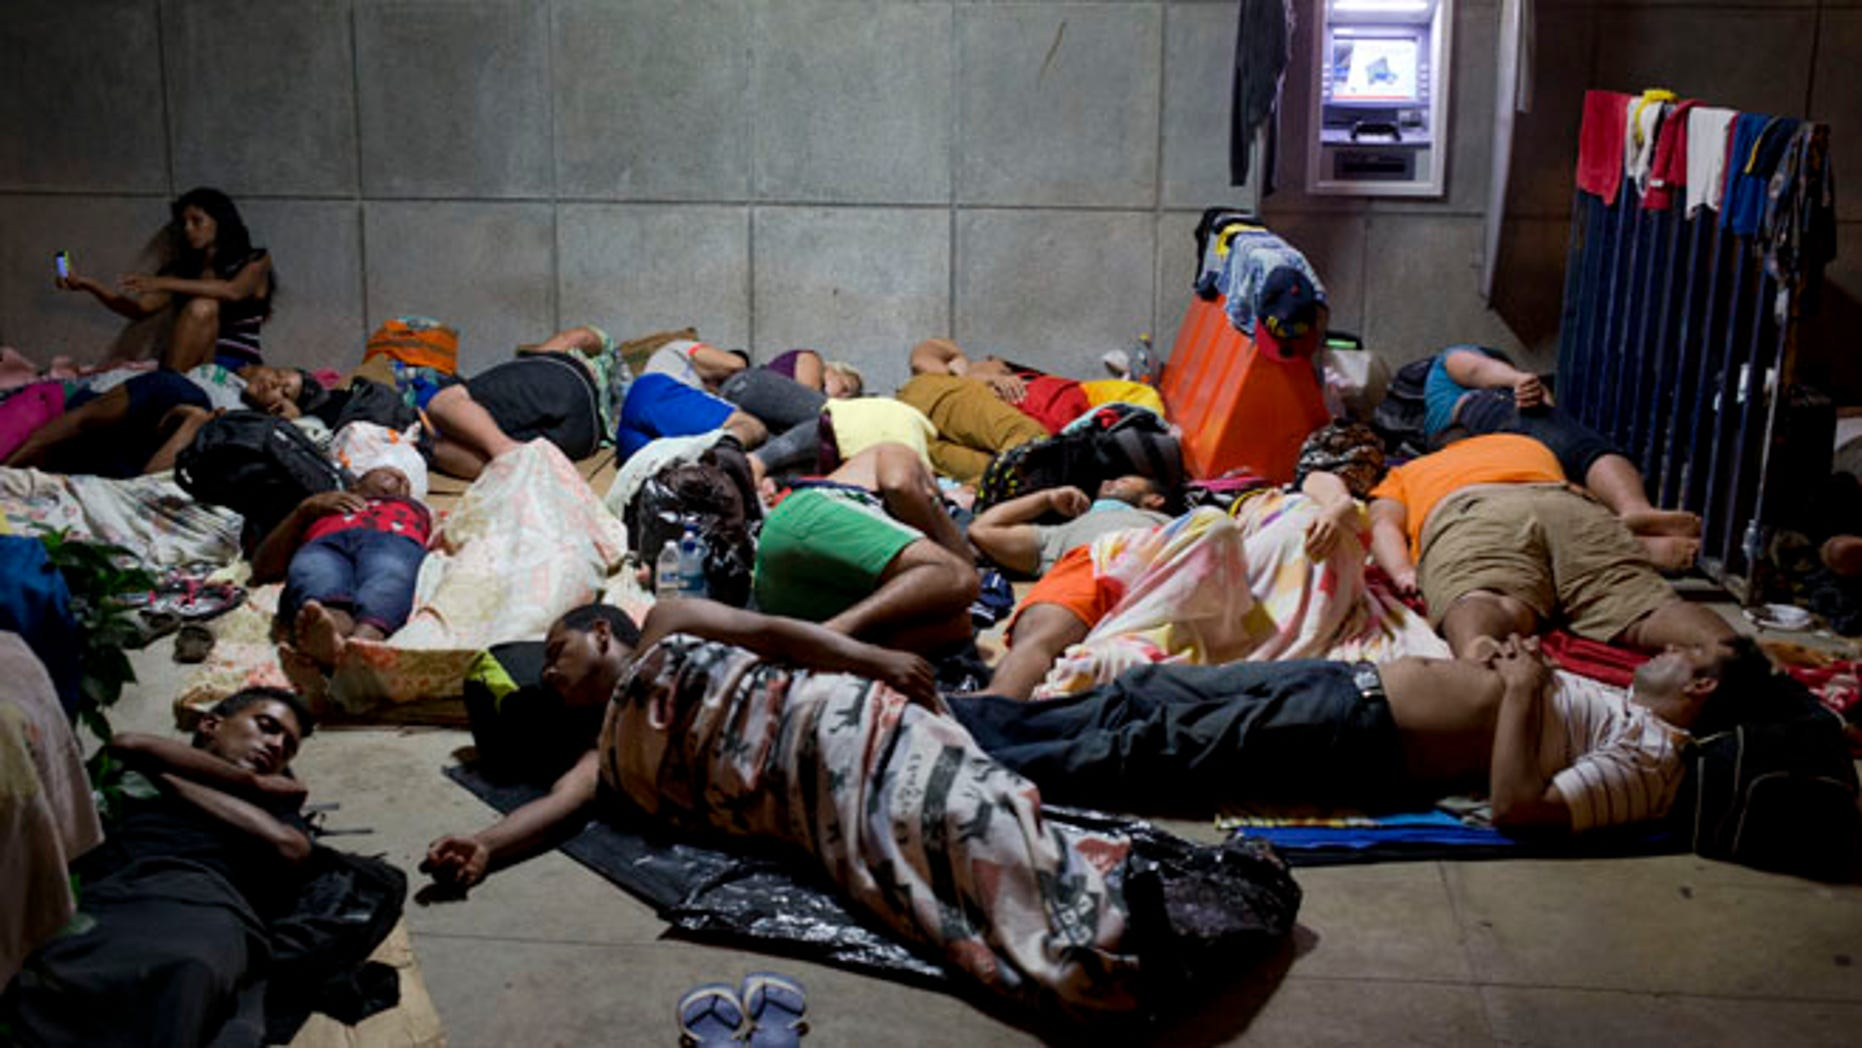 In this Nov. 21, 2015 file photo, a Cuban woman migrant uses her cell phone while other Cubans sleep, outside of the border control building in Penas Blancas, Costa Rica. (AP Photo/Esteban Felix, File)